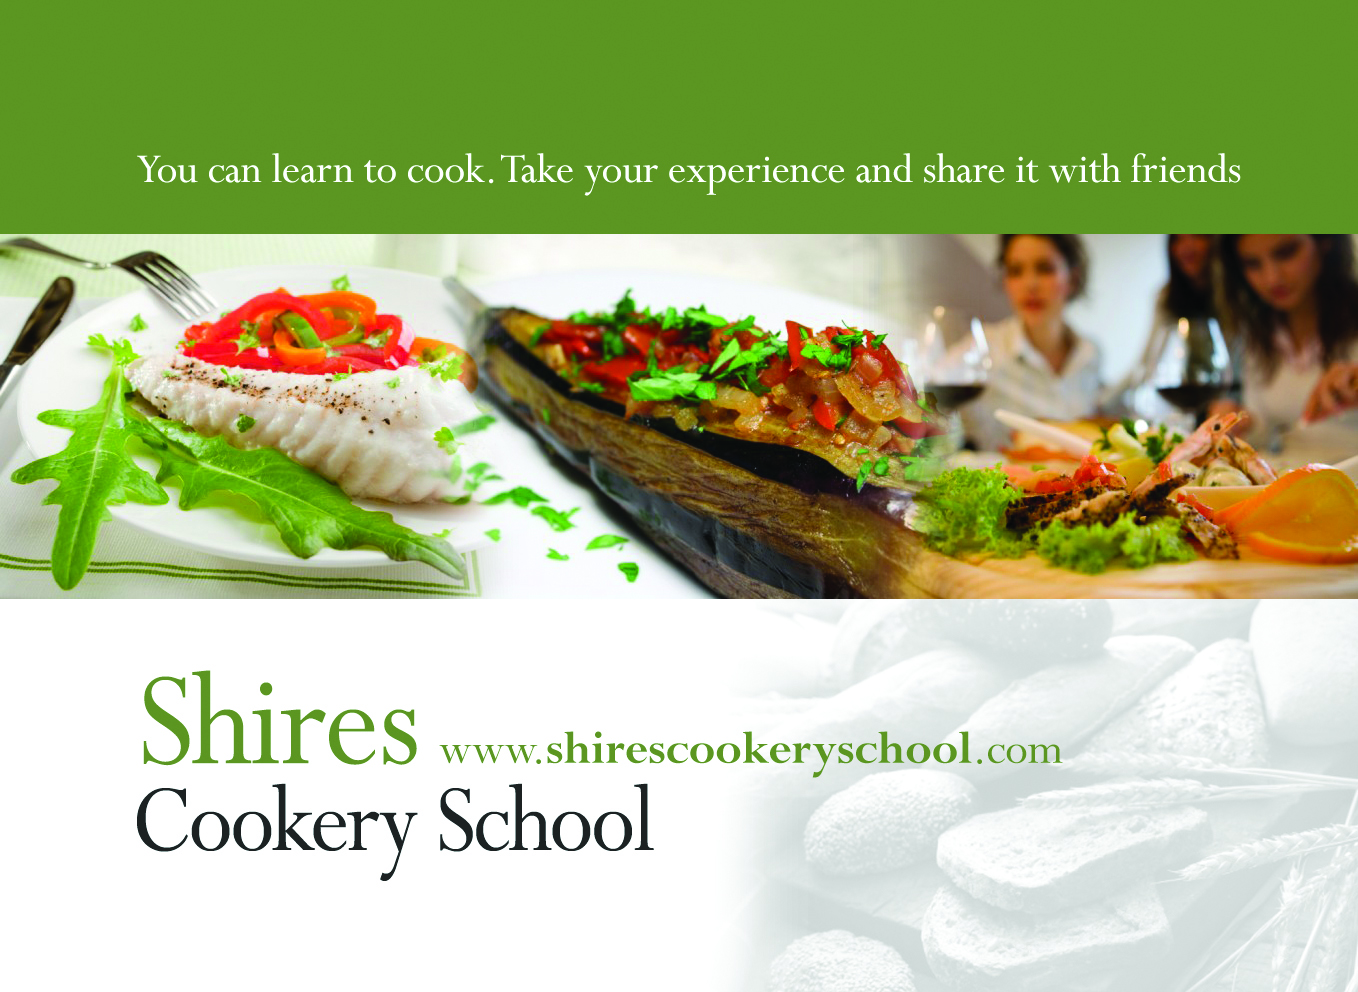 Shires Cookery School